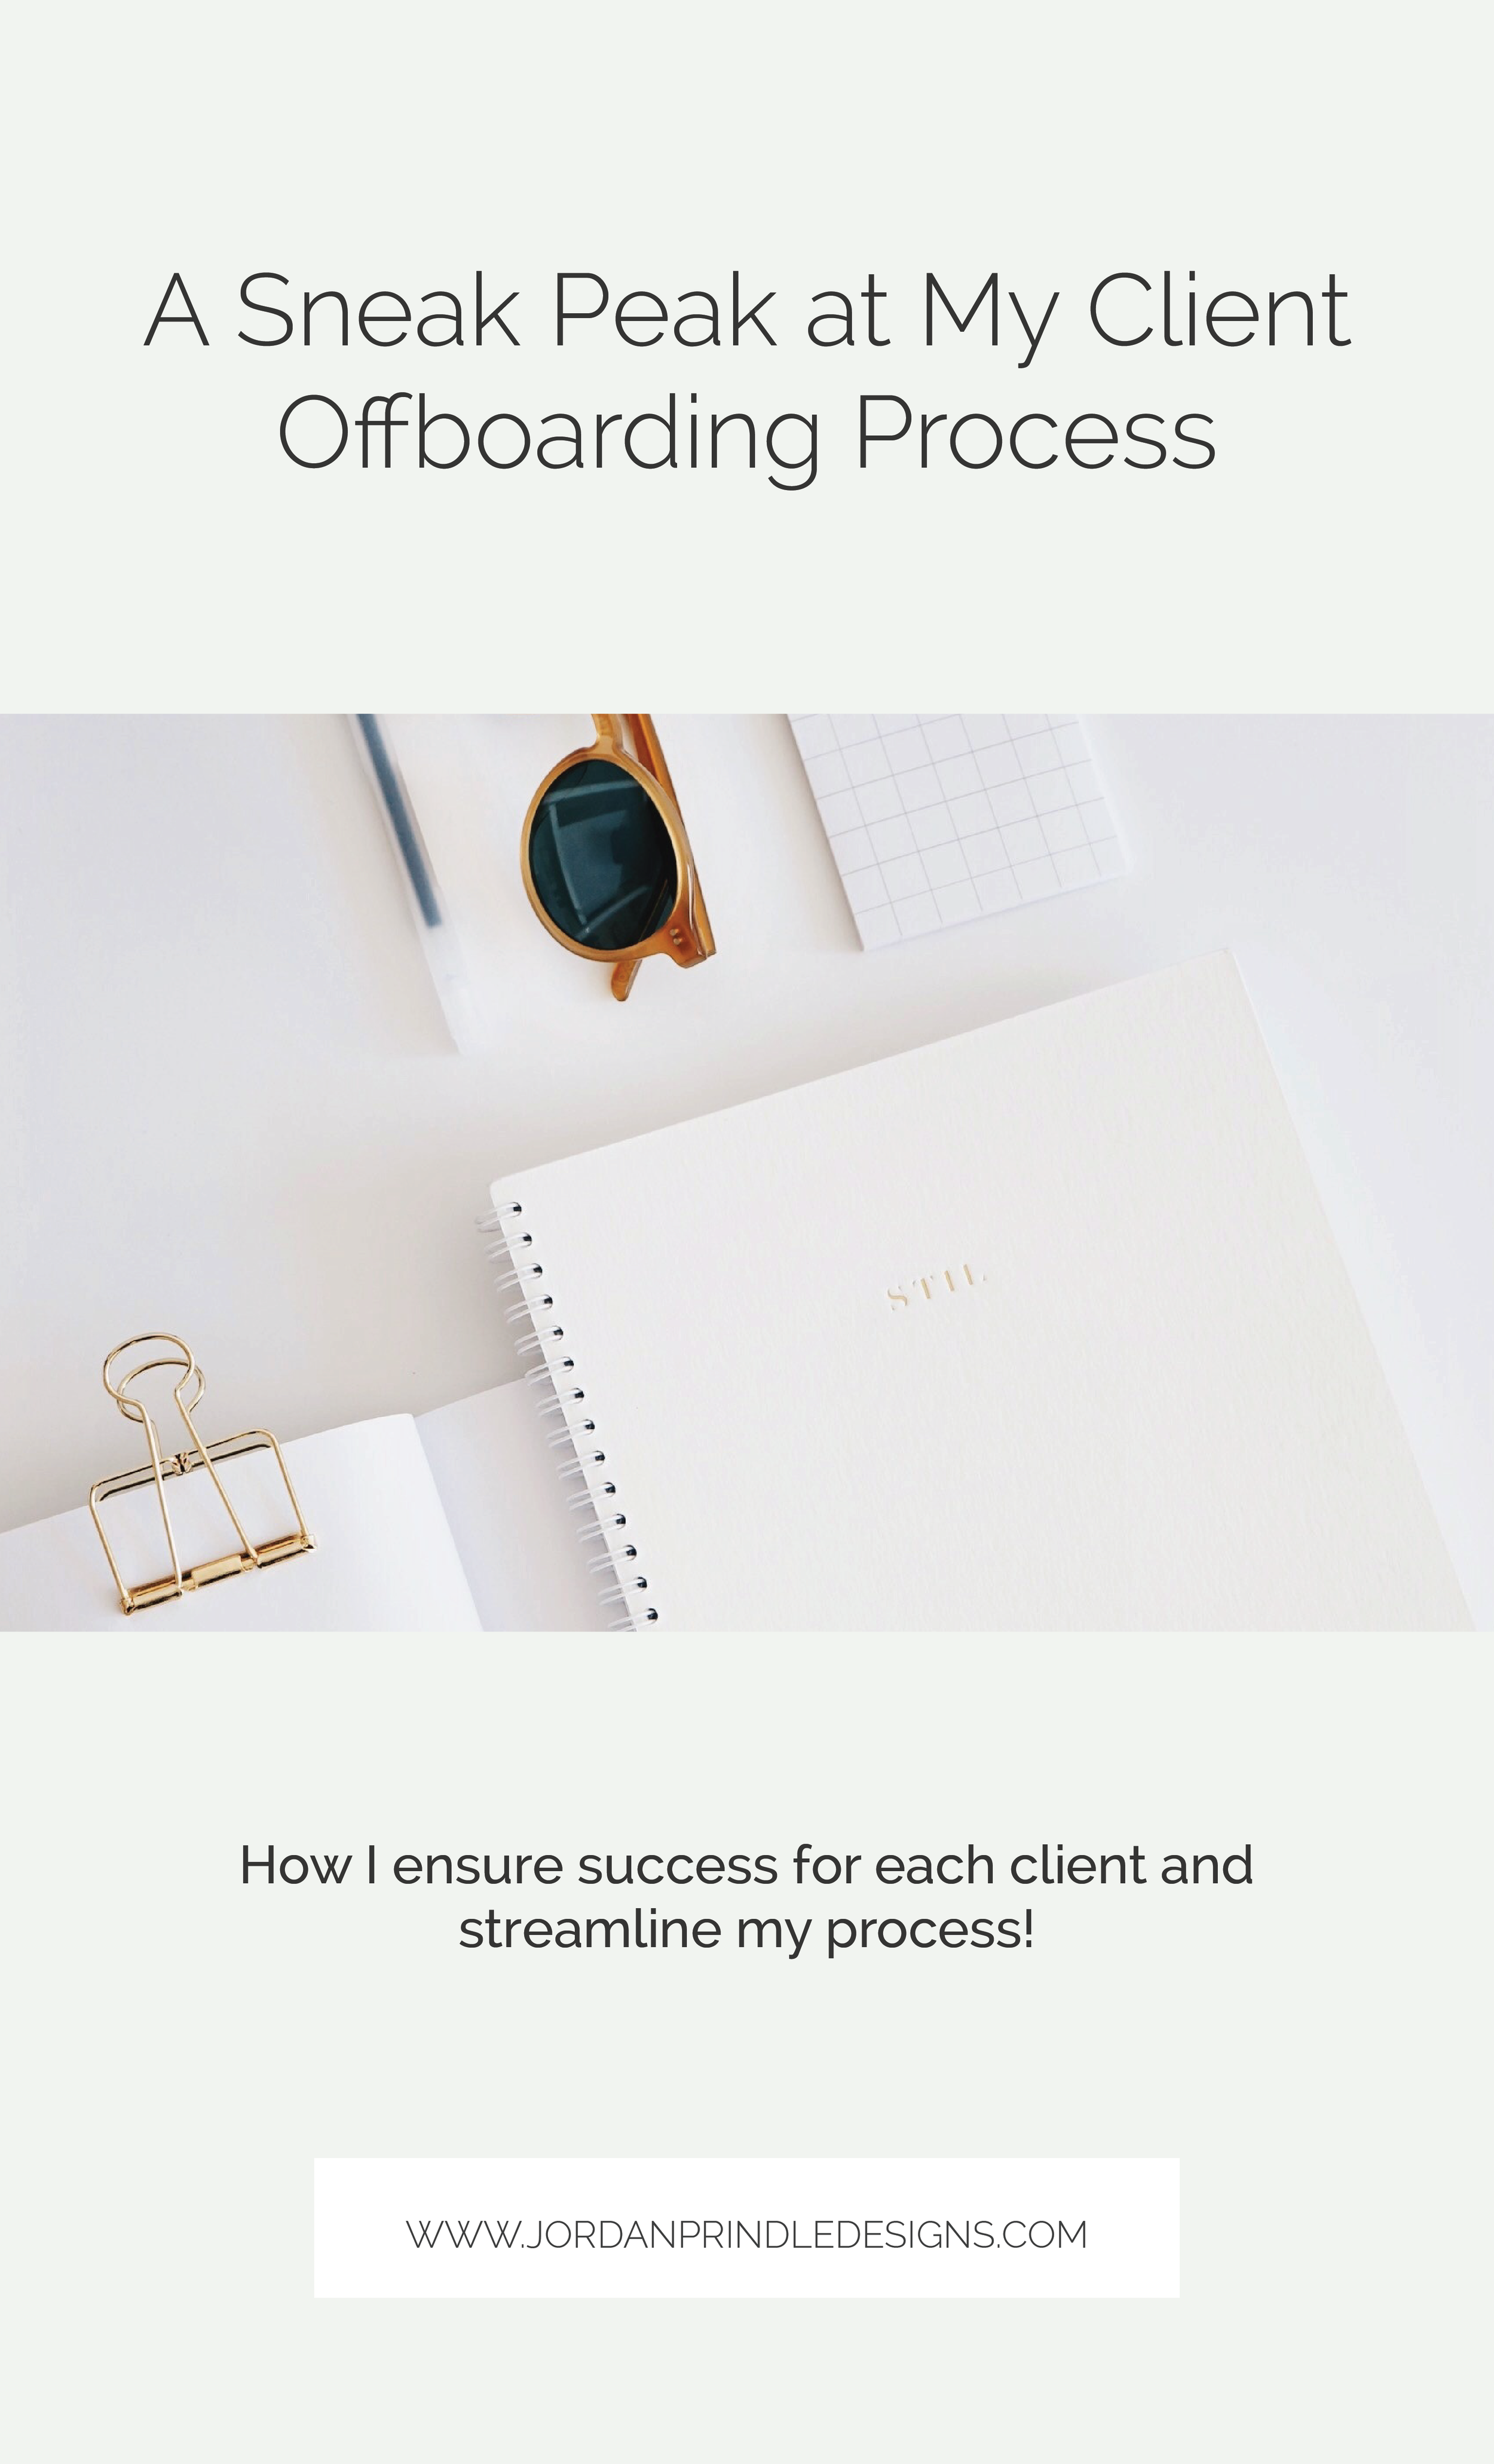 A Sneak Peak at My Client Offboarding Process | At the end of each project, I begin my offboarding process to ensure each client has a smooth brand transition. Read the full story at www.jordanprindledesigns.com #branddesign #logodesign #brandidentity